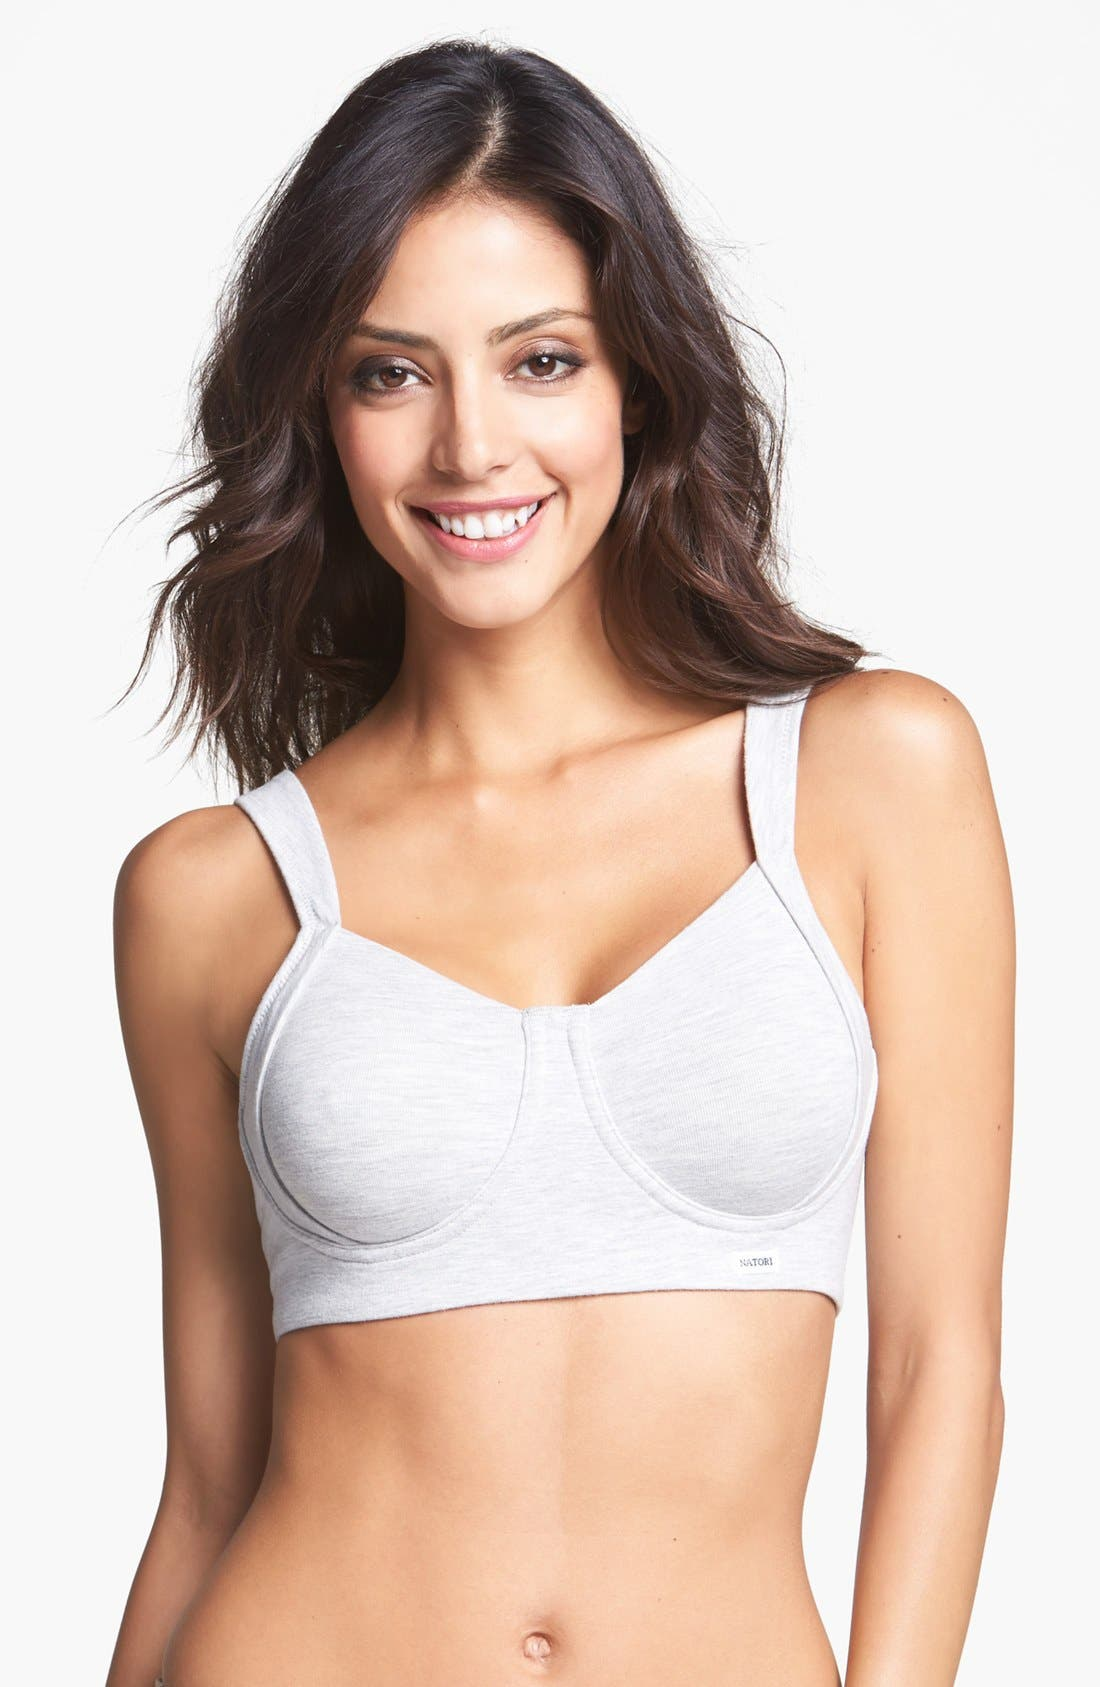 Natori Underwire Sports Bra